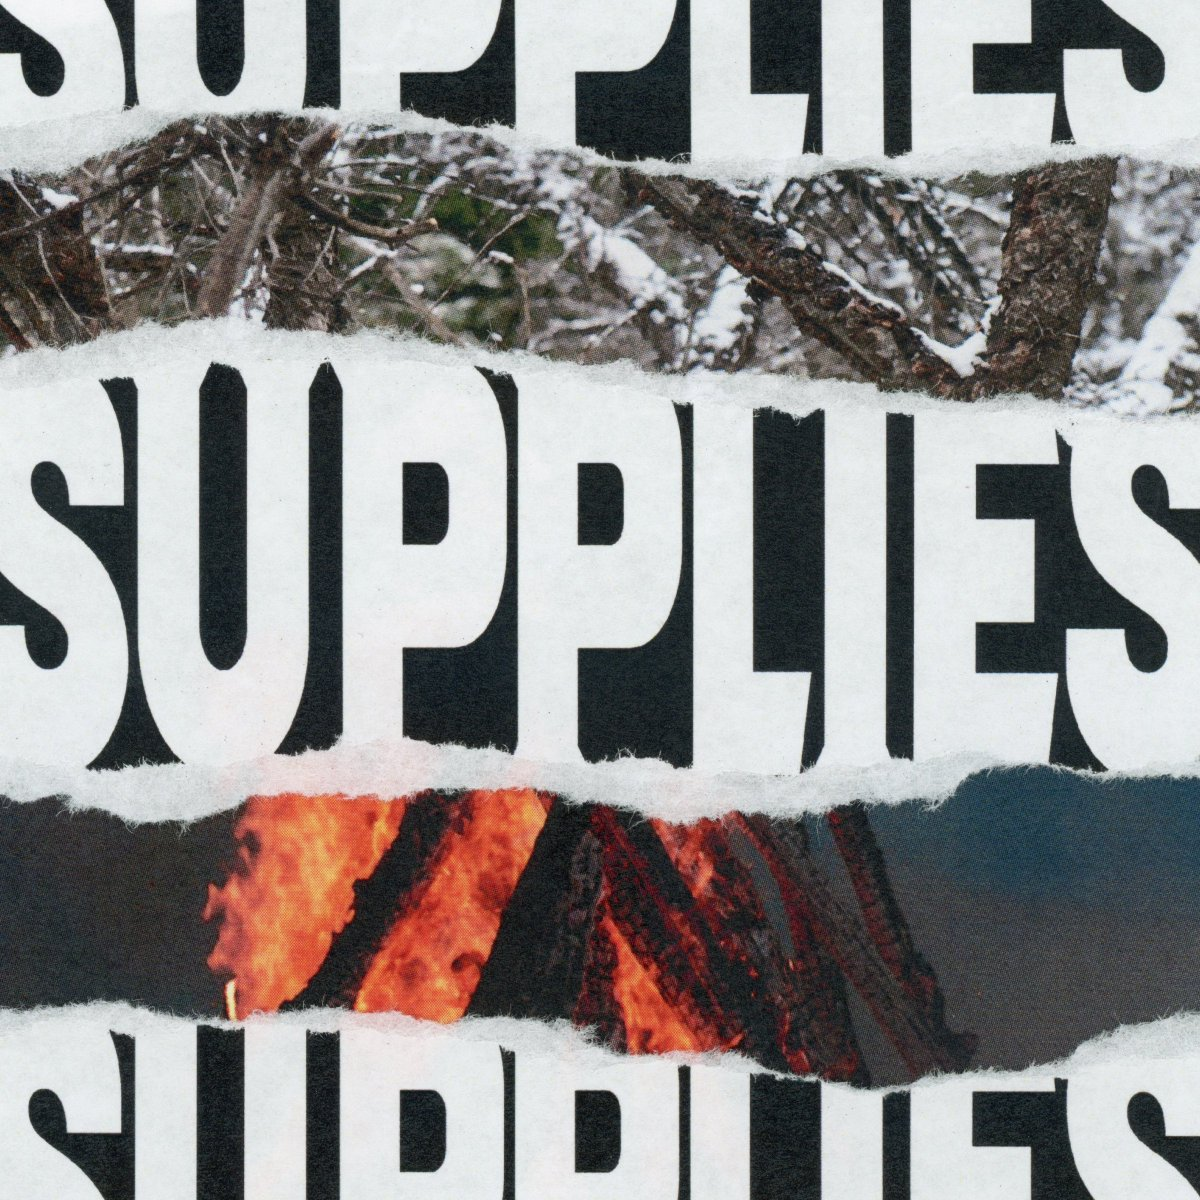 2 of 4. Supplies  https://t.co/PlAckg5LUQ https://t.co/FZQFR4EcKE